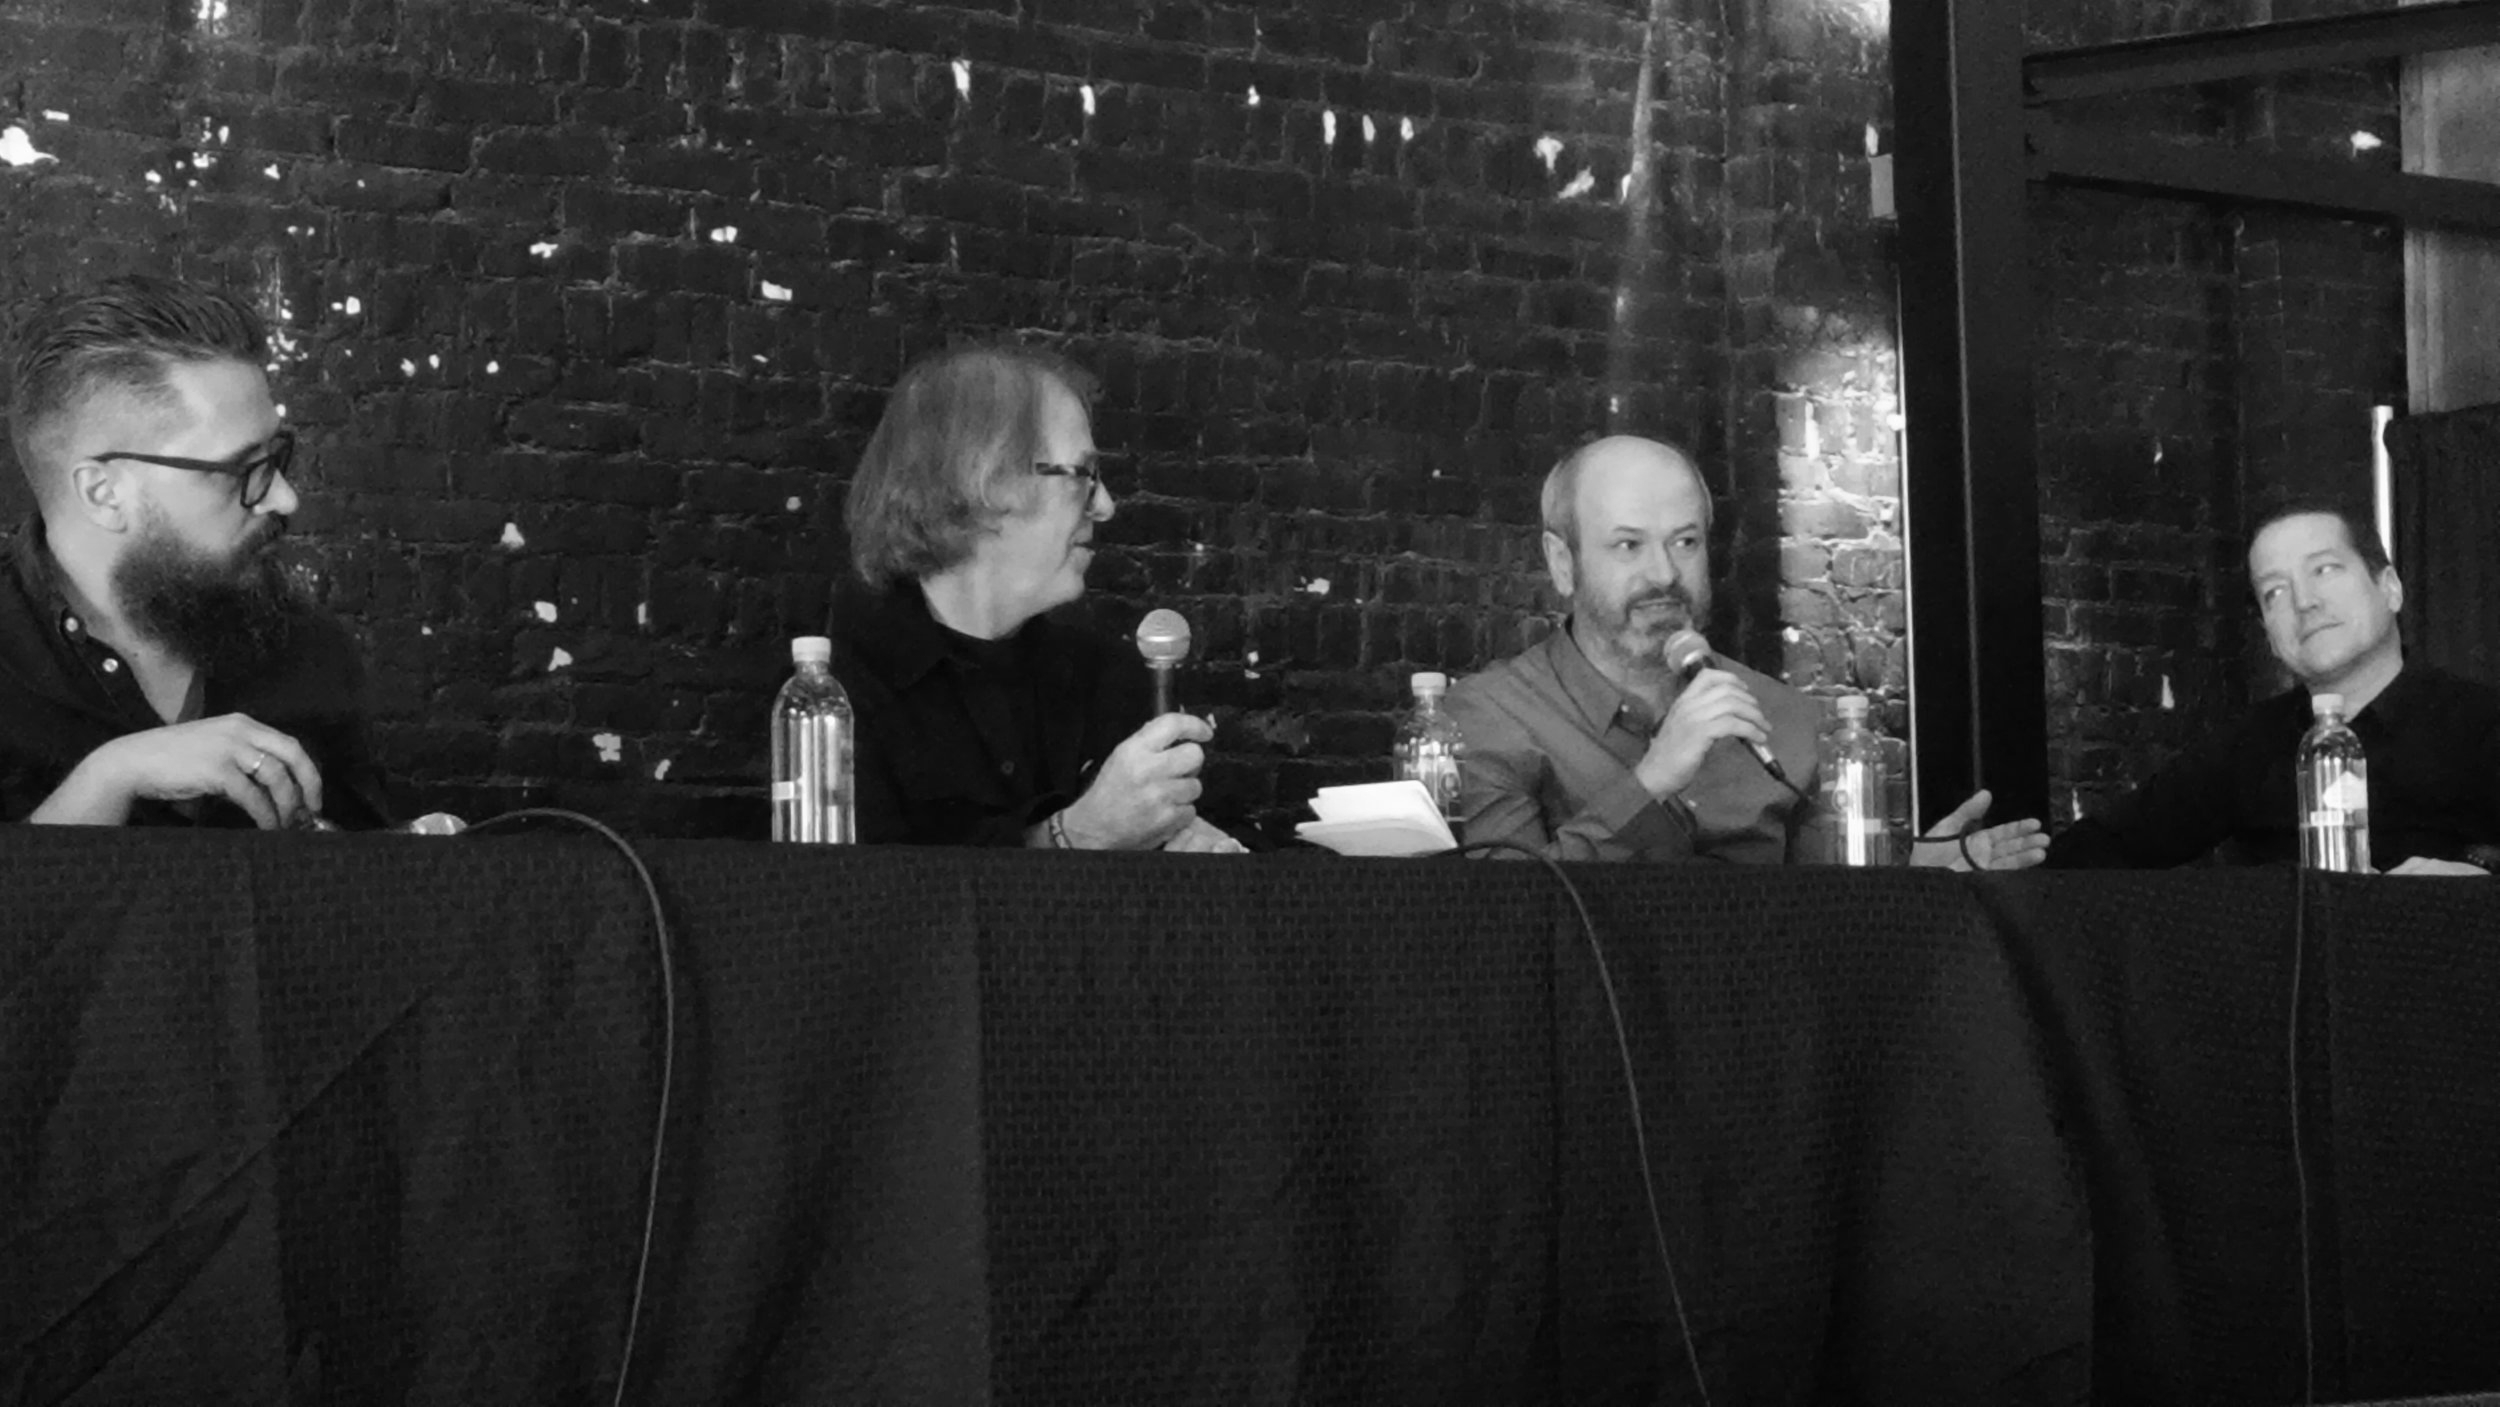 Norwegian Invasion, an artist panel at Big Ears 2017: Nils Økland, Lars Petter Hagen, Jan Ole Otnæs and Helge Sten, photo by Pete Eby